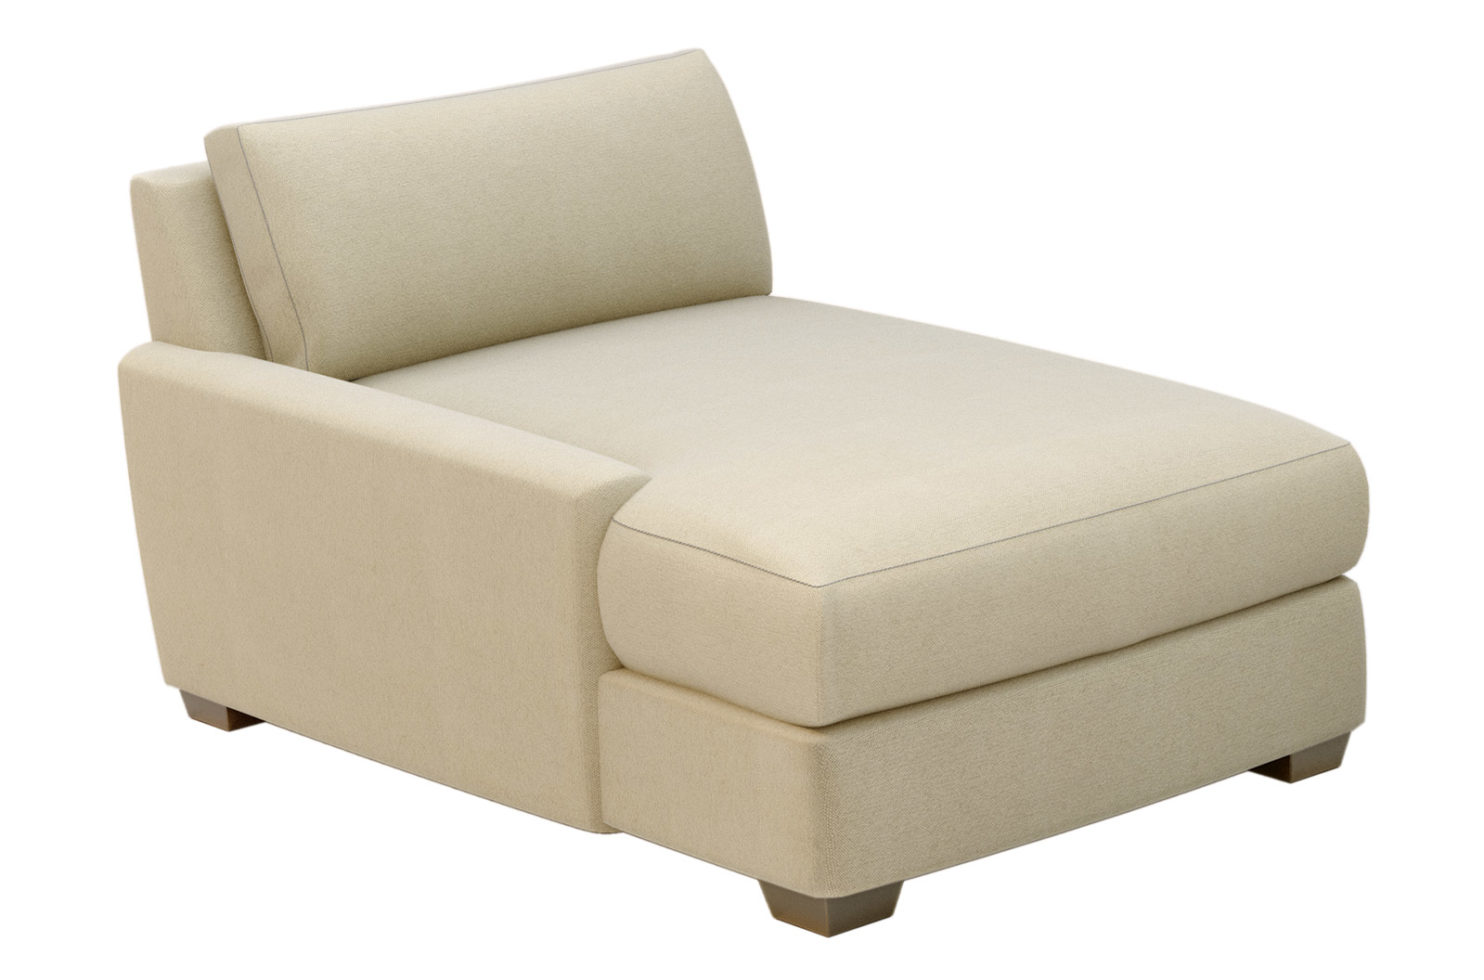 fizz imperial one arm chaise 105FT004P2 CH LAF